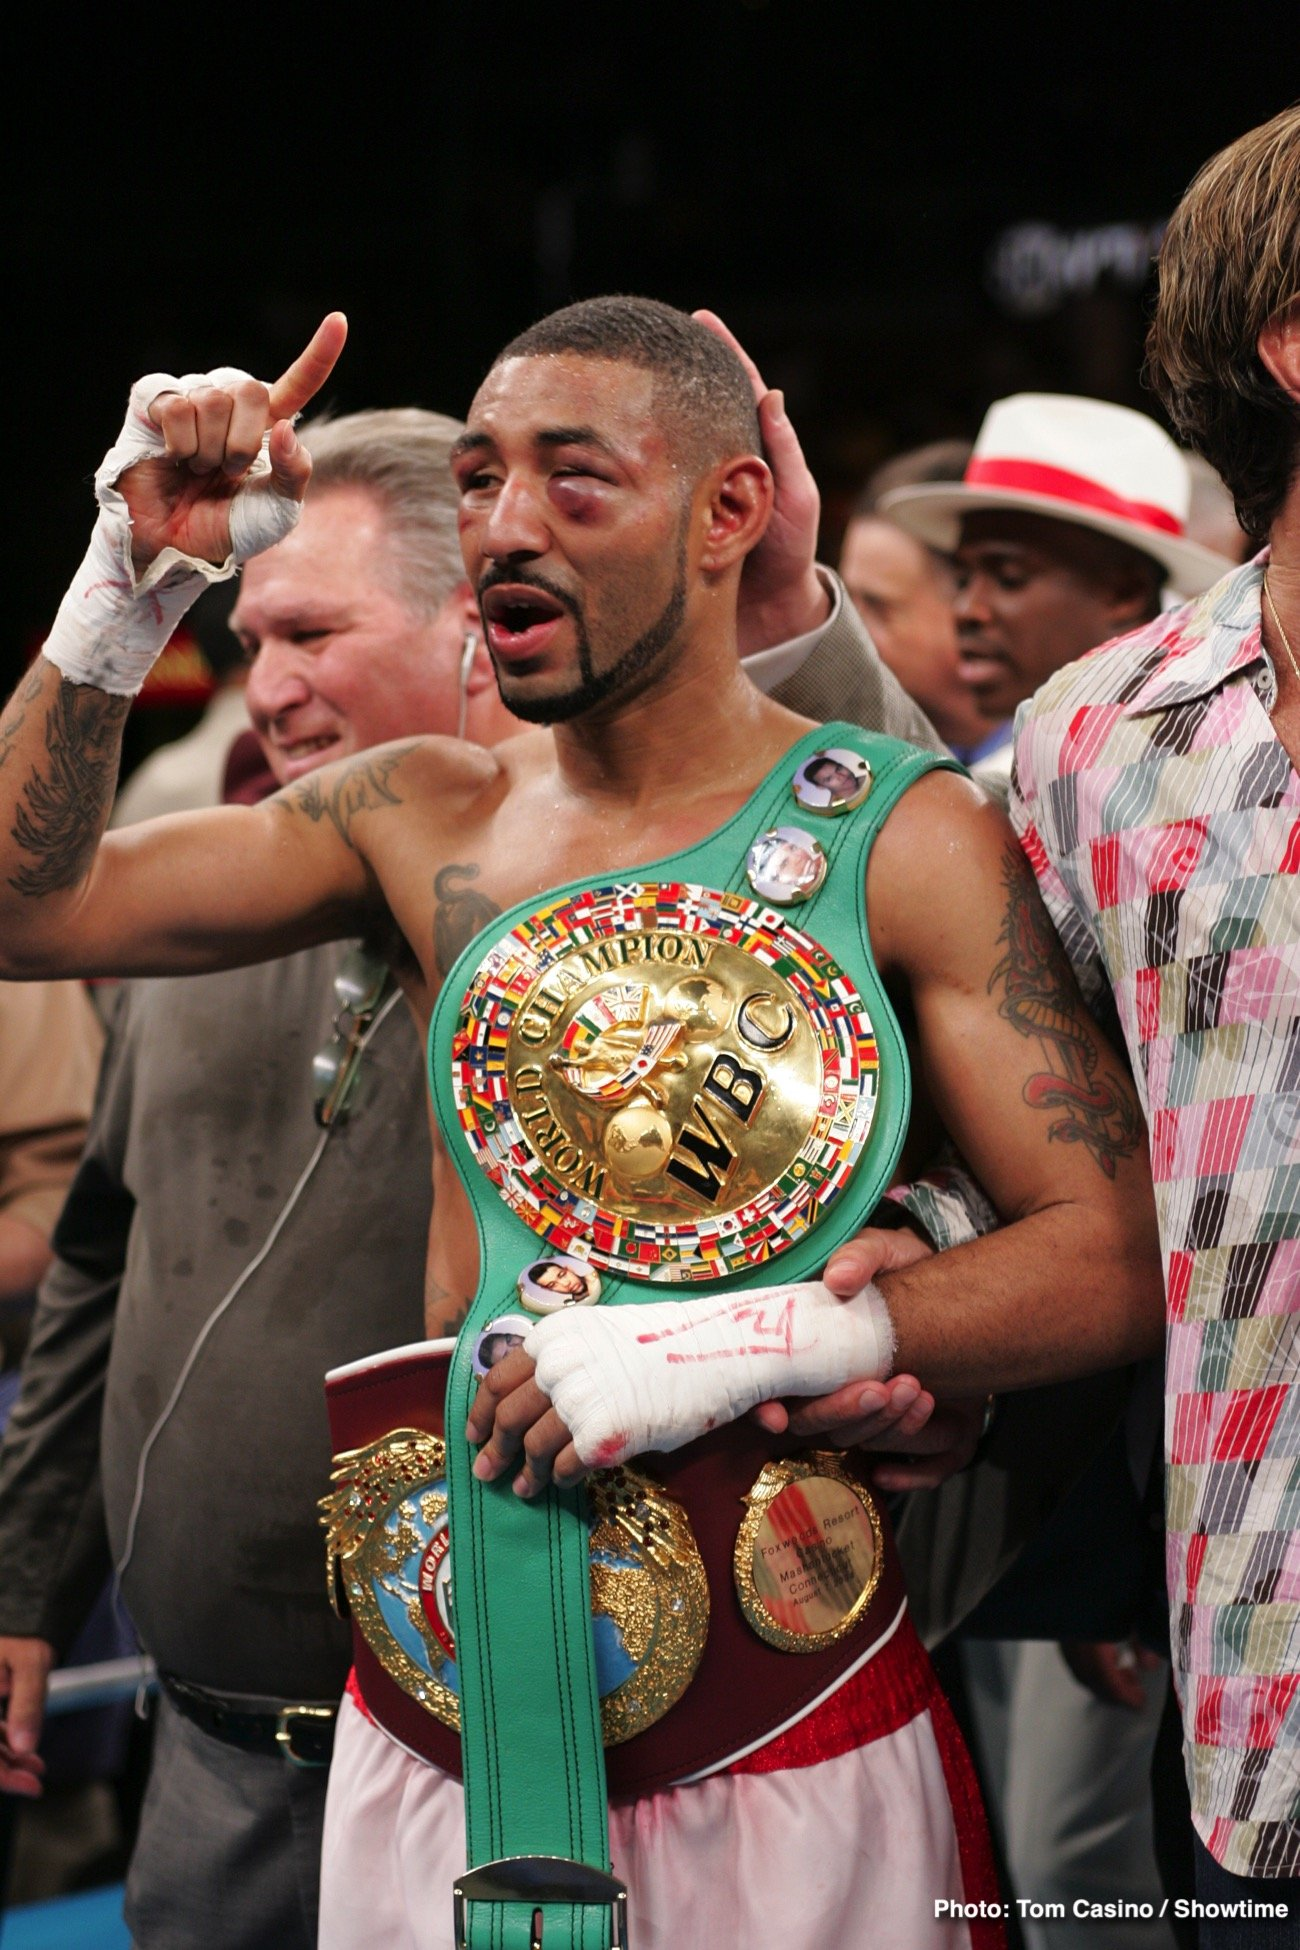 Diego Corrales, Jose luis Castillo - There are quite a few big fight anniversaries here in the month of May. Yet, for some, in fact, for many, the biggest, best and most brutally memorable fight from this month that simply has to be celebrated by all, is the all-out war 135-pound warriors Diego Corrales and Jose Luis Castillo put on.